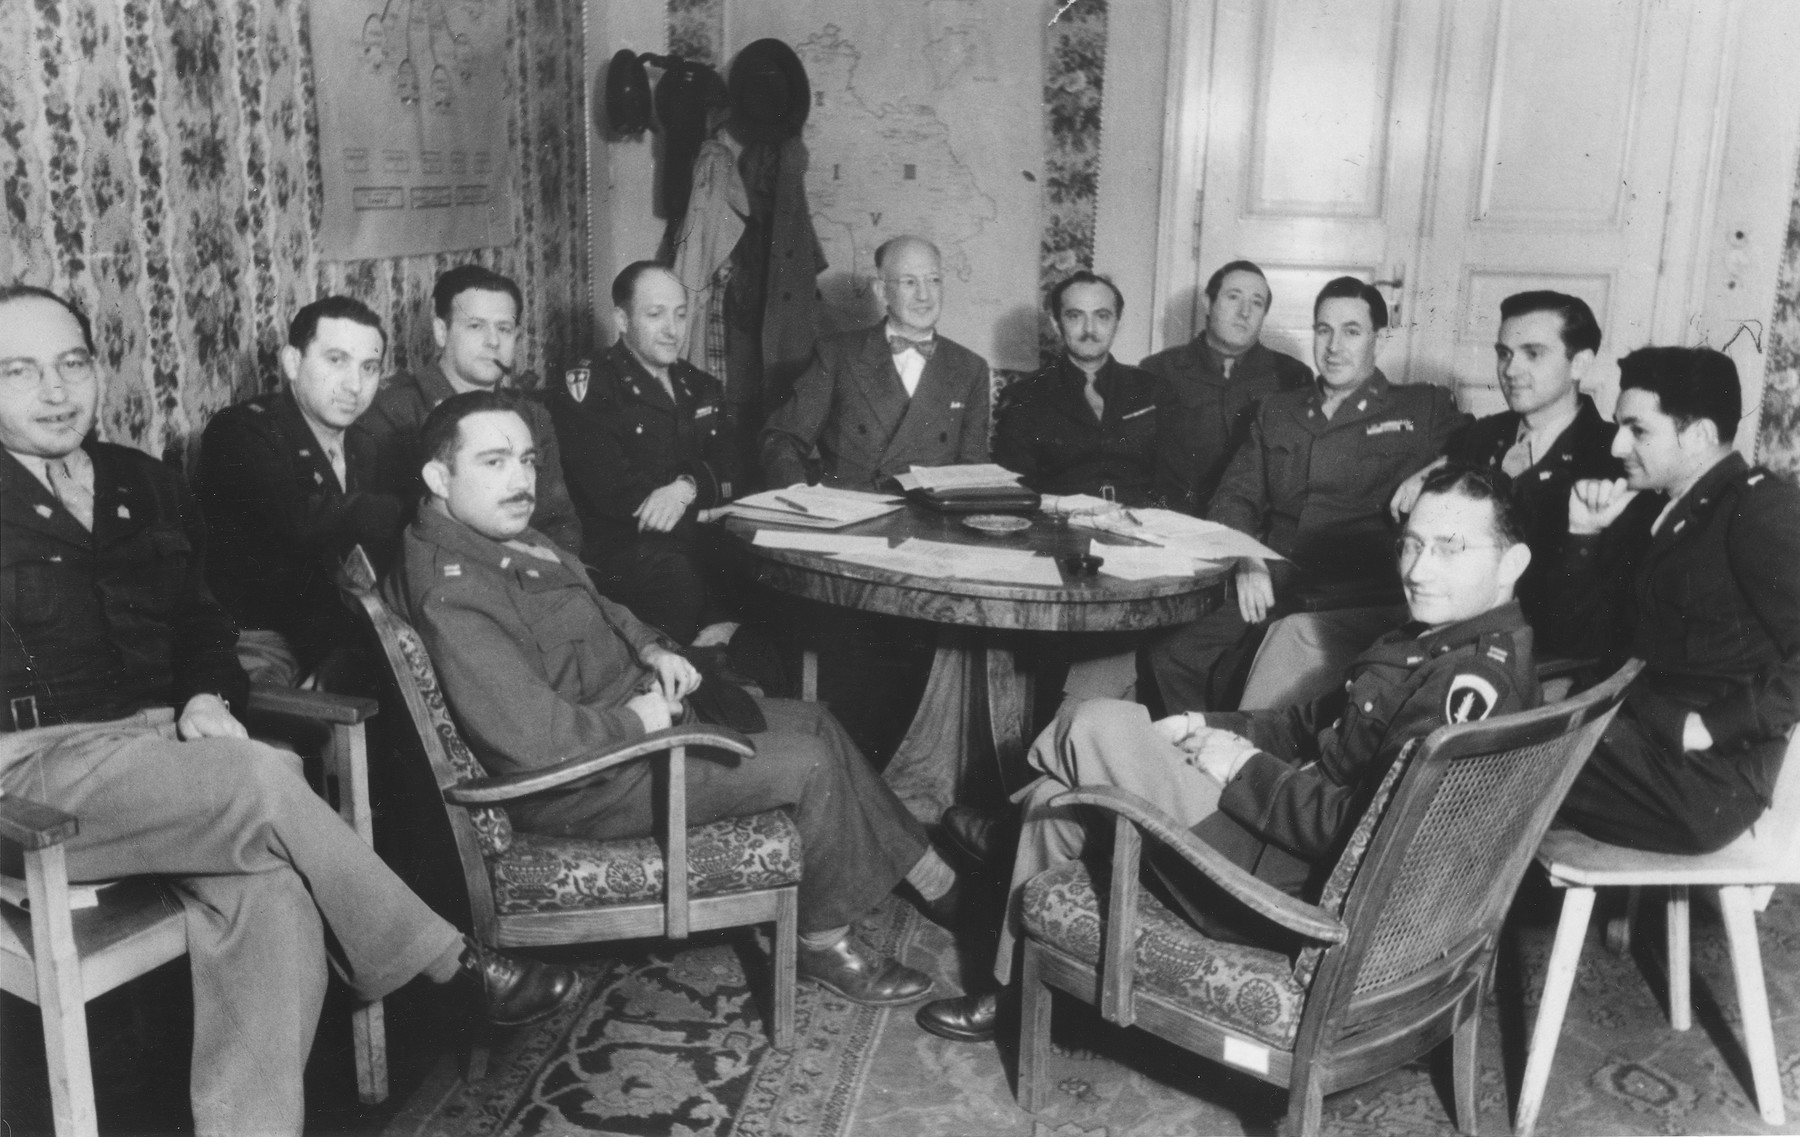 American Jewish army chaplains attend a meeting called by Judge Louis Levinthal, Advisor on Jewish Affairs to the U.S. Army in Germany.    Among those pictured are Judge Louis Levinthal (with bow tie); Mayer Abramowitz (second from the right, in front of the door); Abraham Klausner (far right); and Oscar Lifschutz (front left in the arm chair).